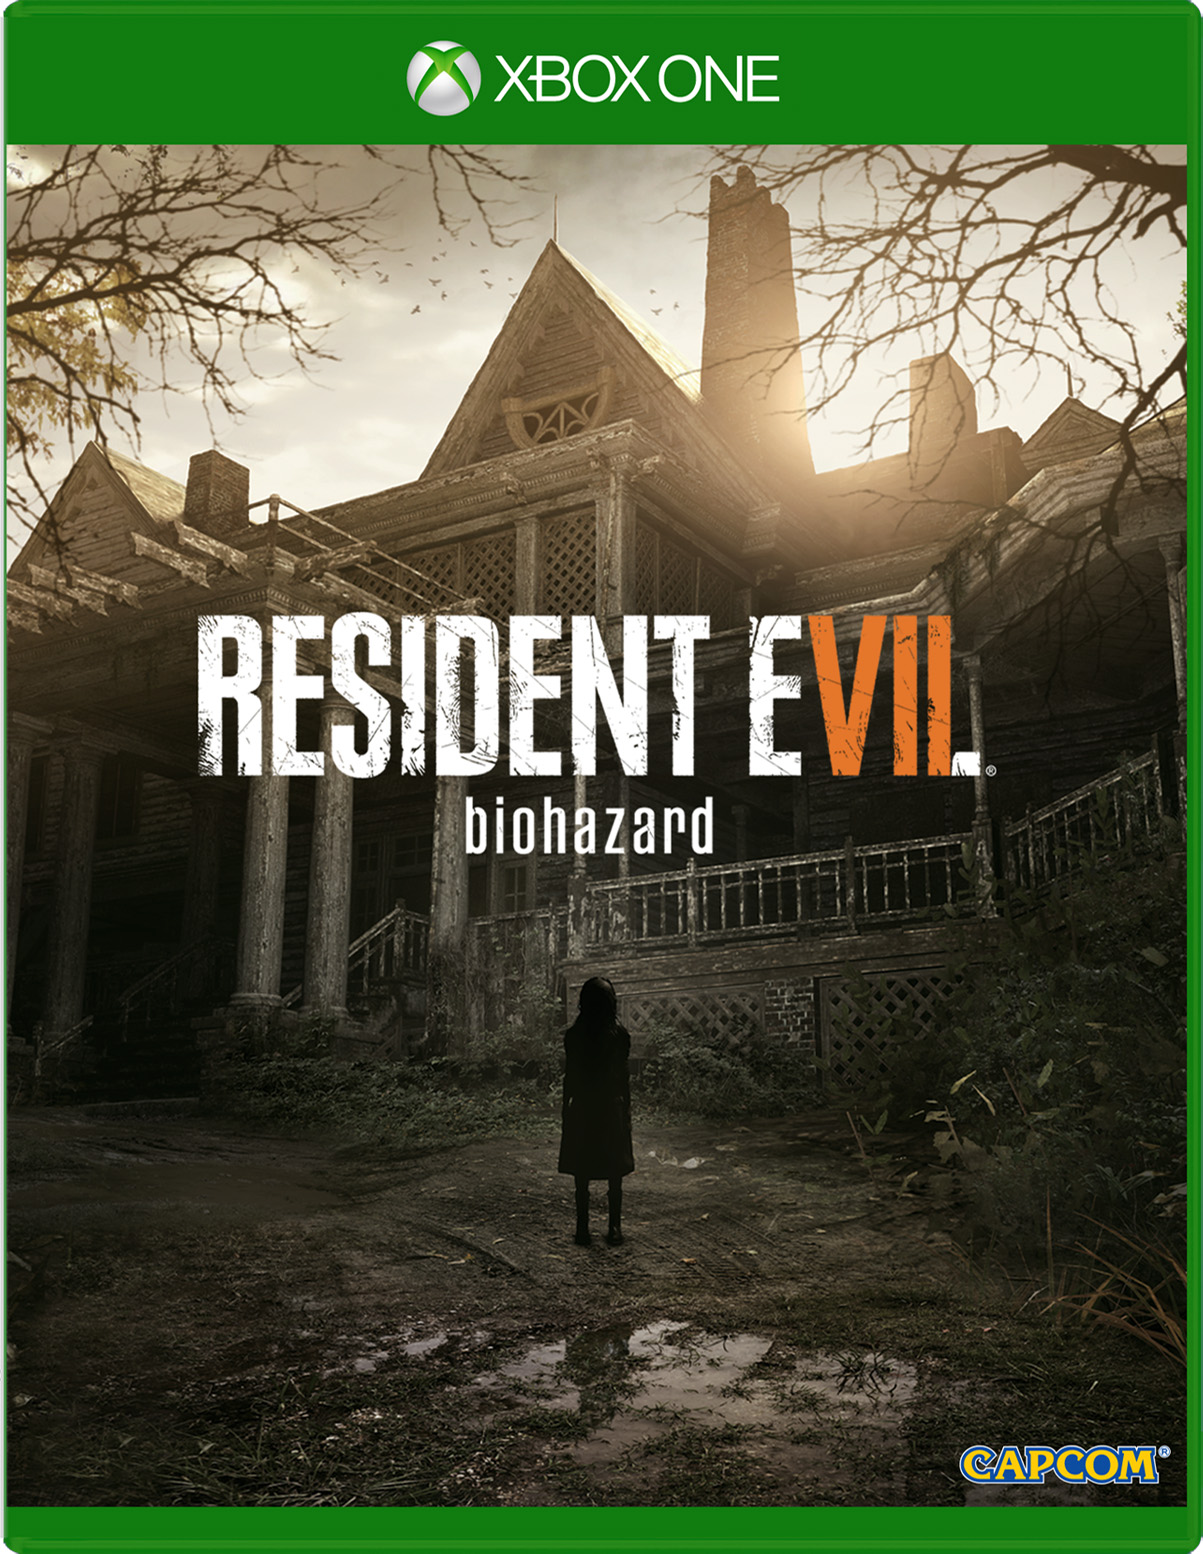 Resident Evil 7 biohazard for Xbox One